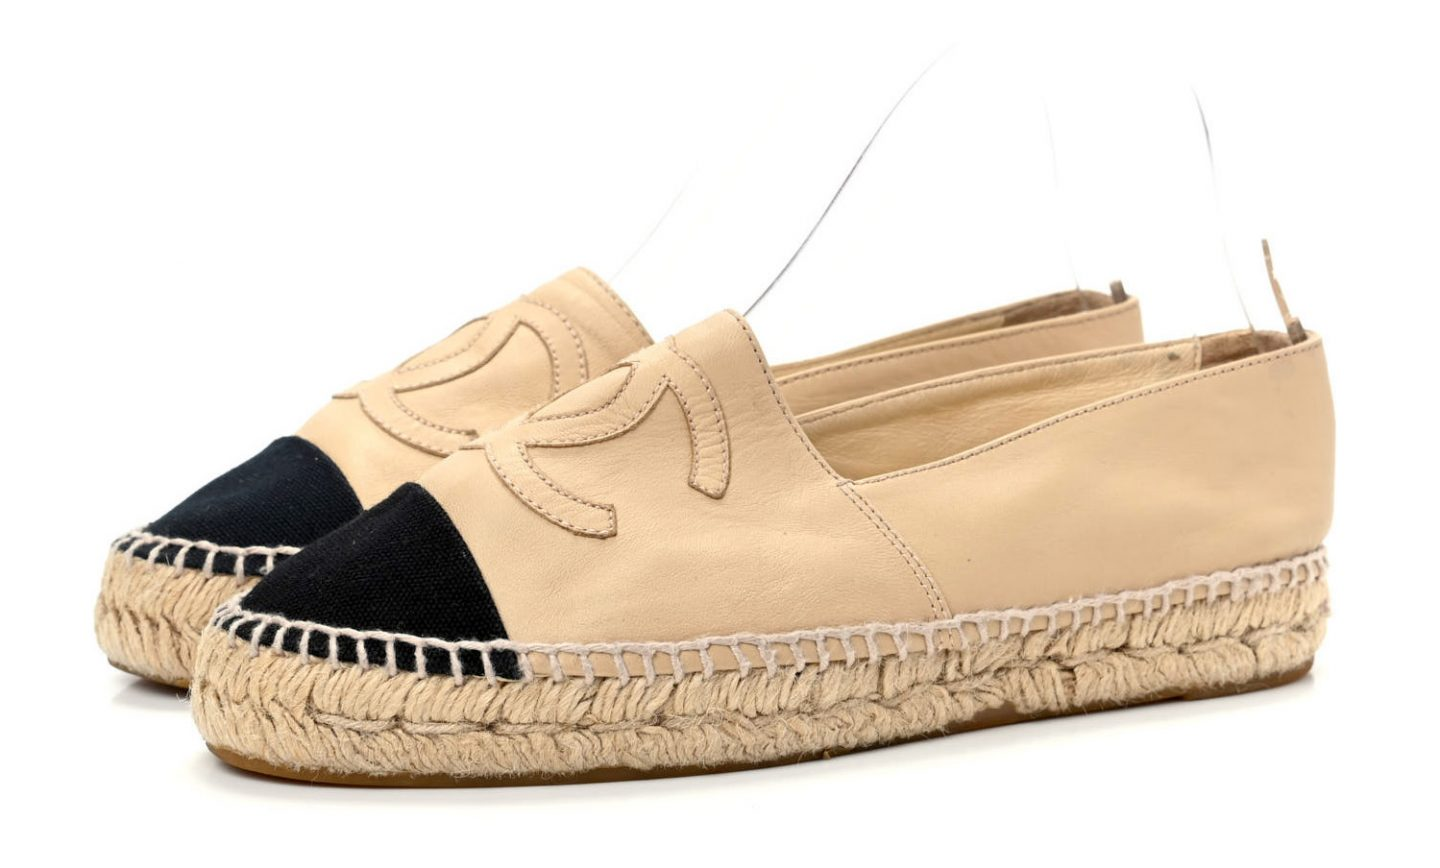 Chanel Espadrilles in beige and black